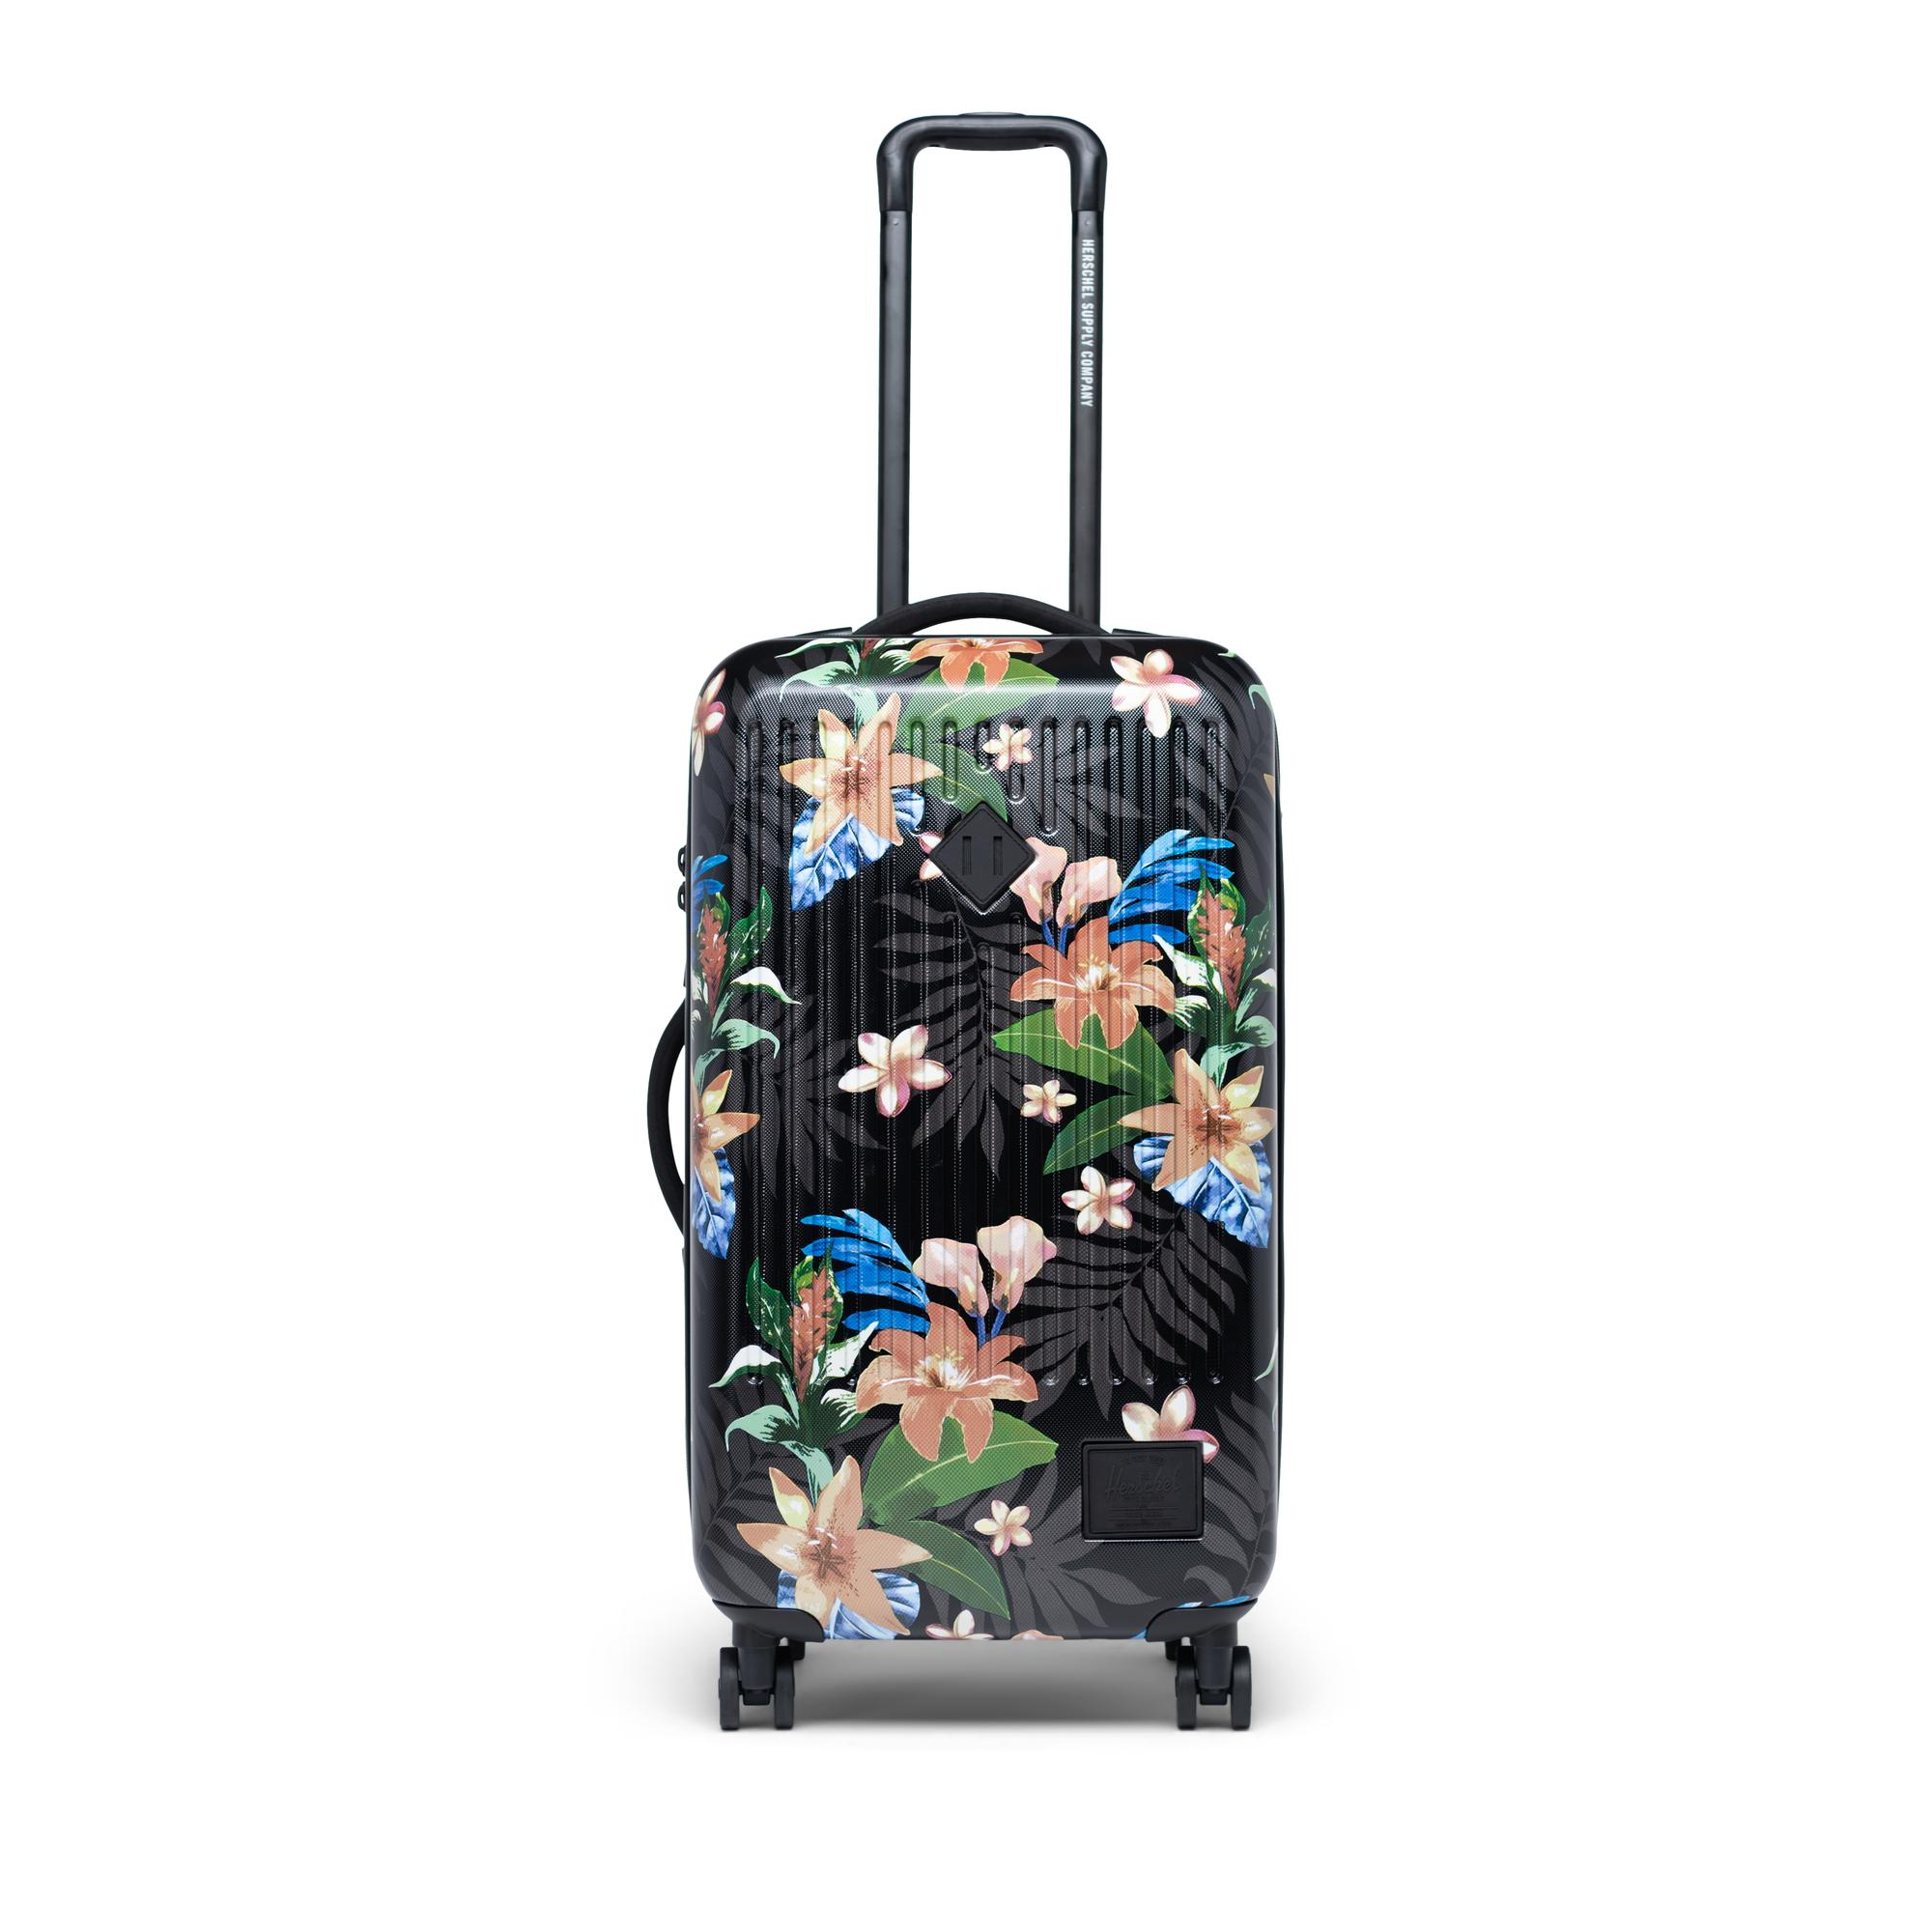 Travel Luggage Cover Blooming Red Roses Black White Stripes Suitcase Protector